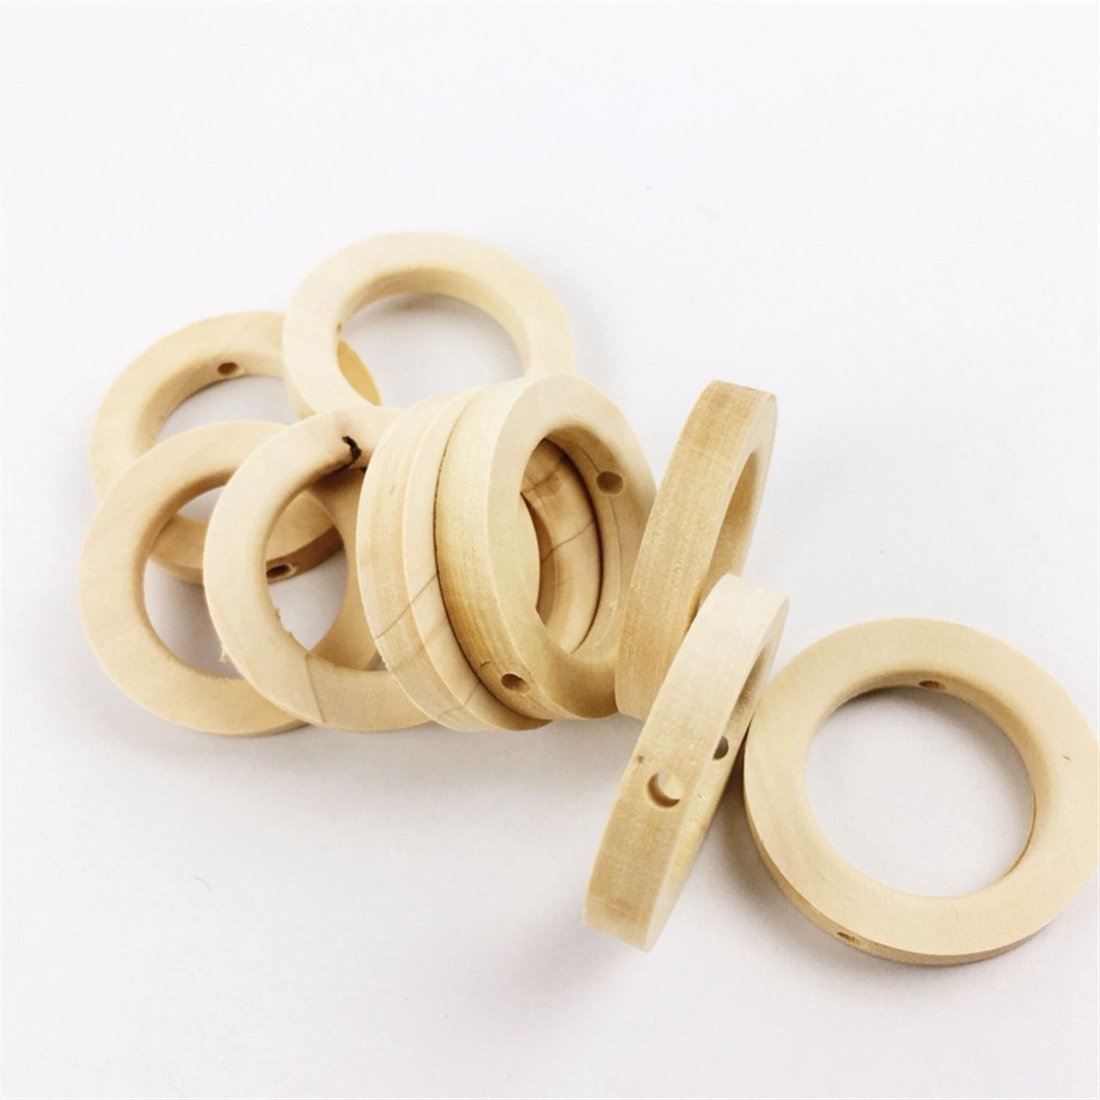 25pc Wooden Teether Baby Crib Toys Diy Crafts For Baby Nursing Necklace Wooden Rings Small Wood Beads